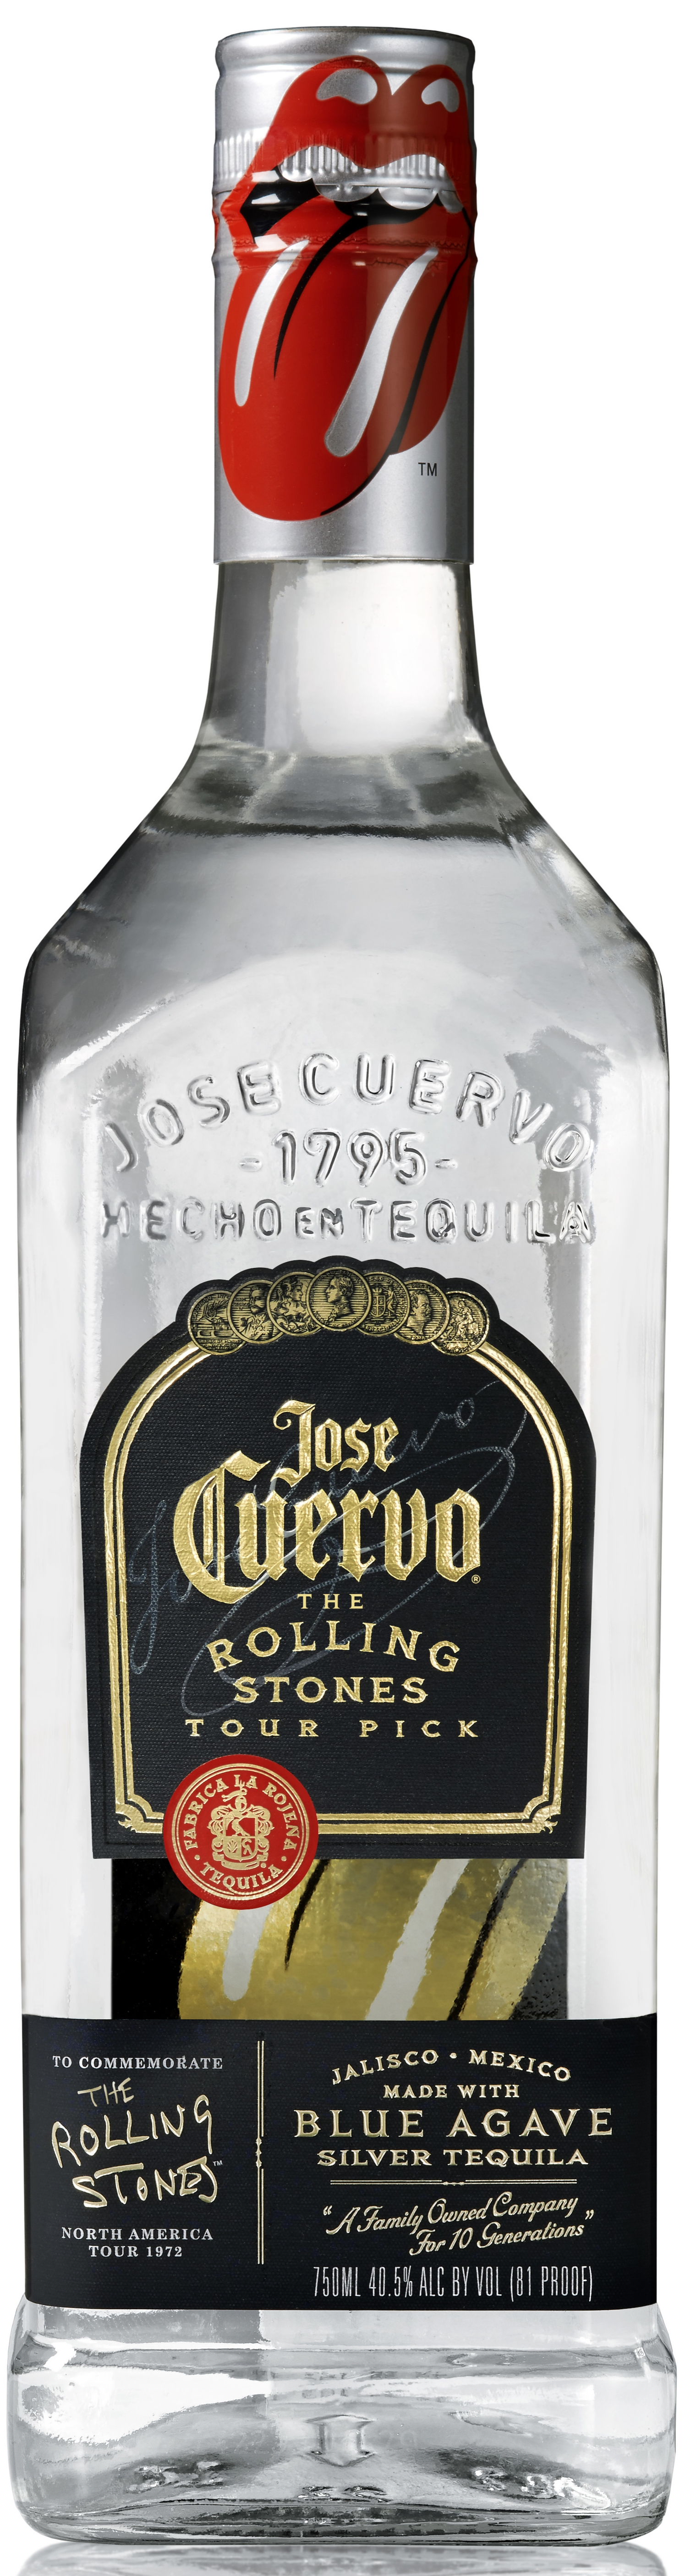 Jose Cuervo Special Edition Rolling Stones Bottle, $17